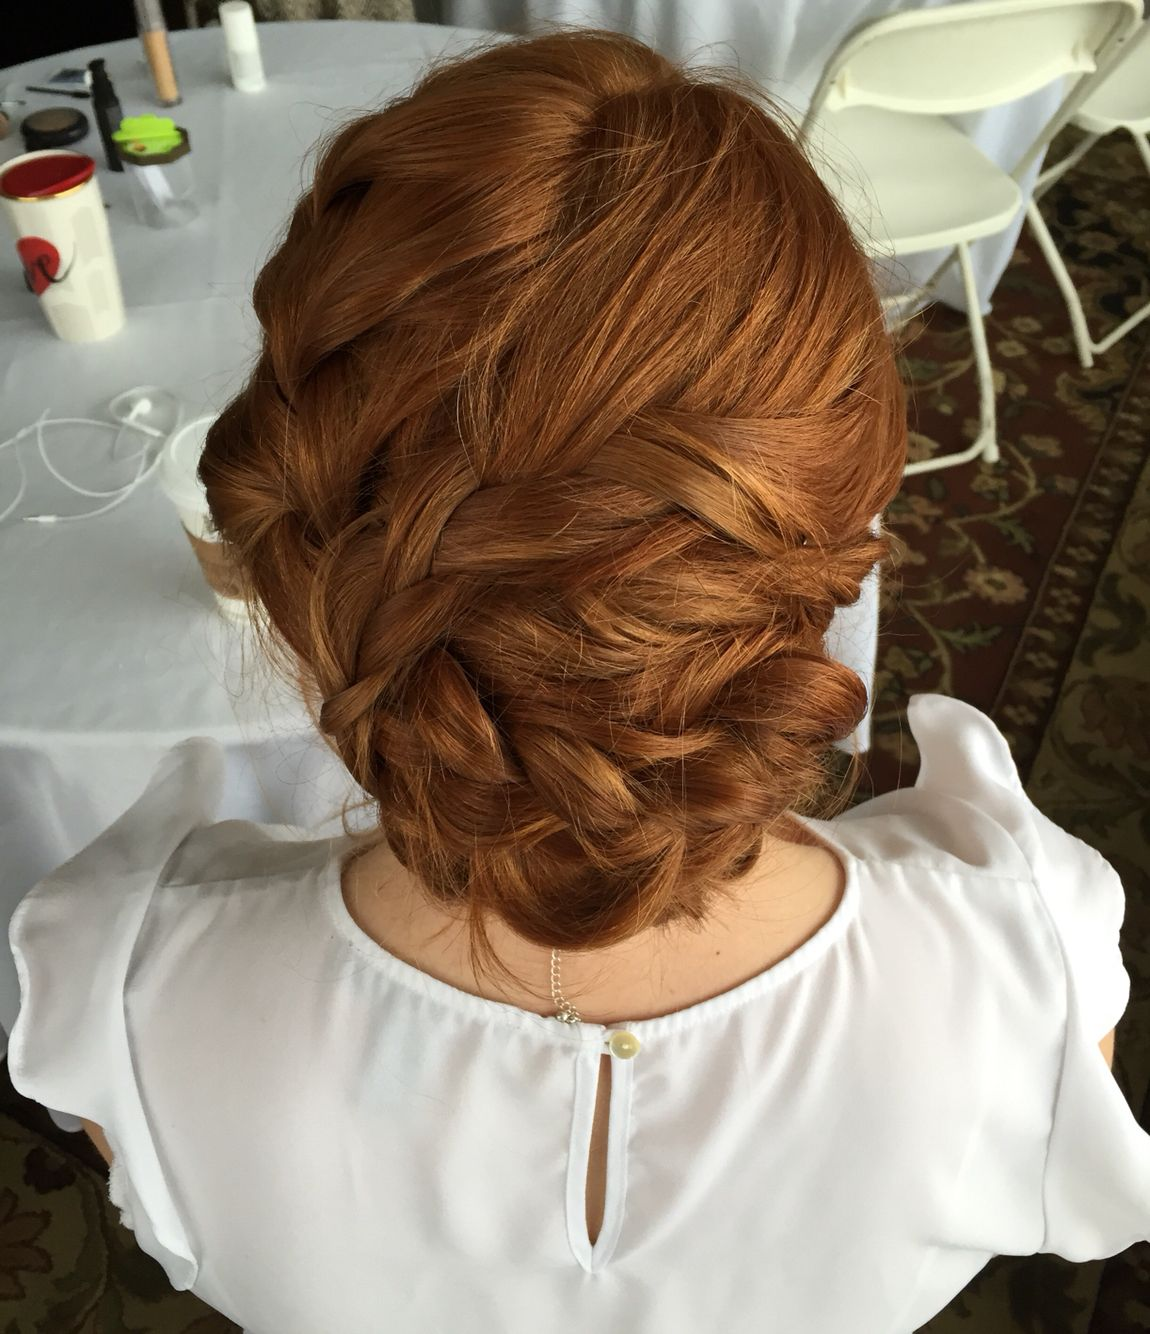 by dori wetzel @ blue salon, reno wedding updo, bridal hair